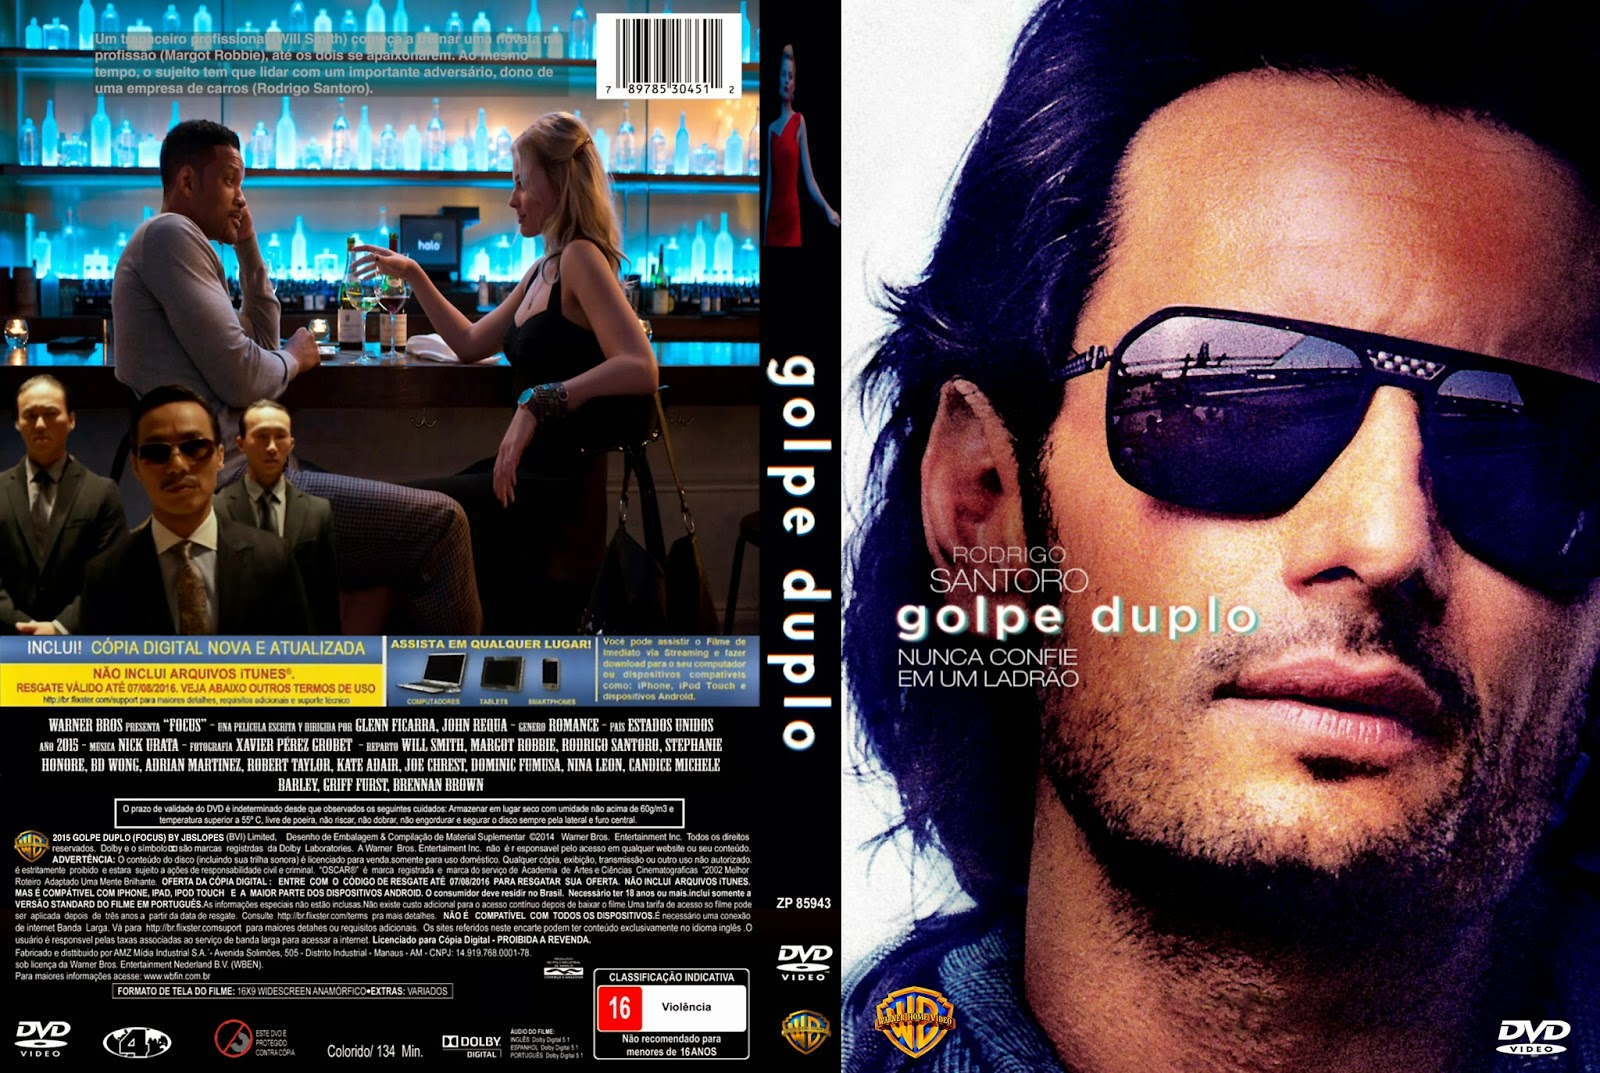 Download Golpe Duplo HDRip XviD Dual Áudio gallery 103439 120 1058386